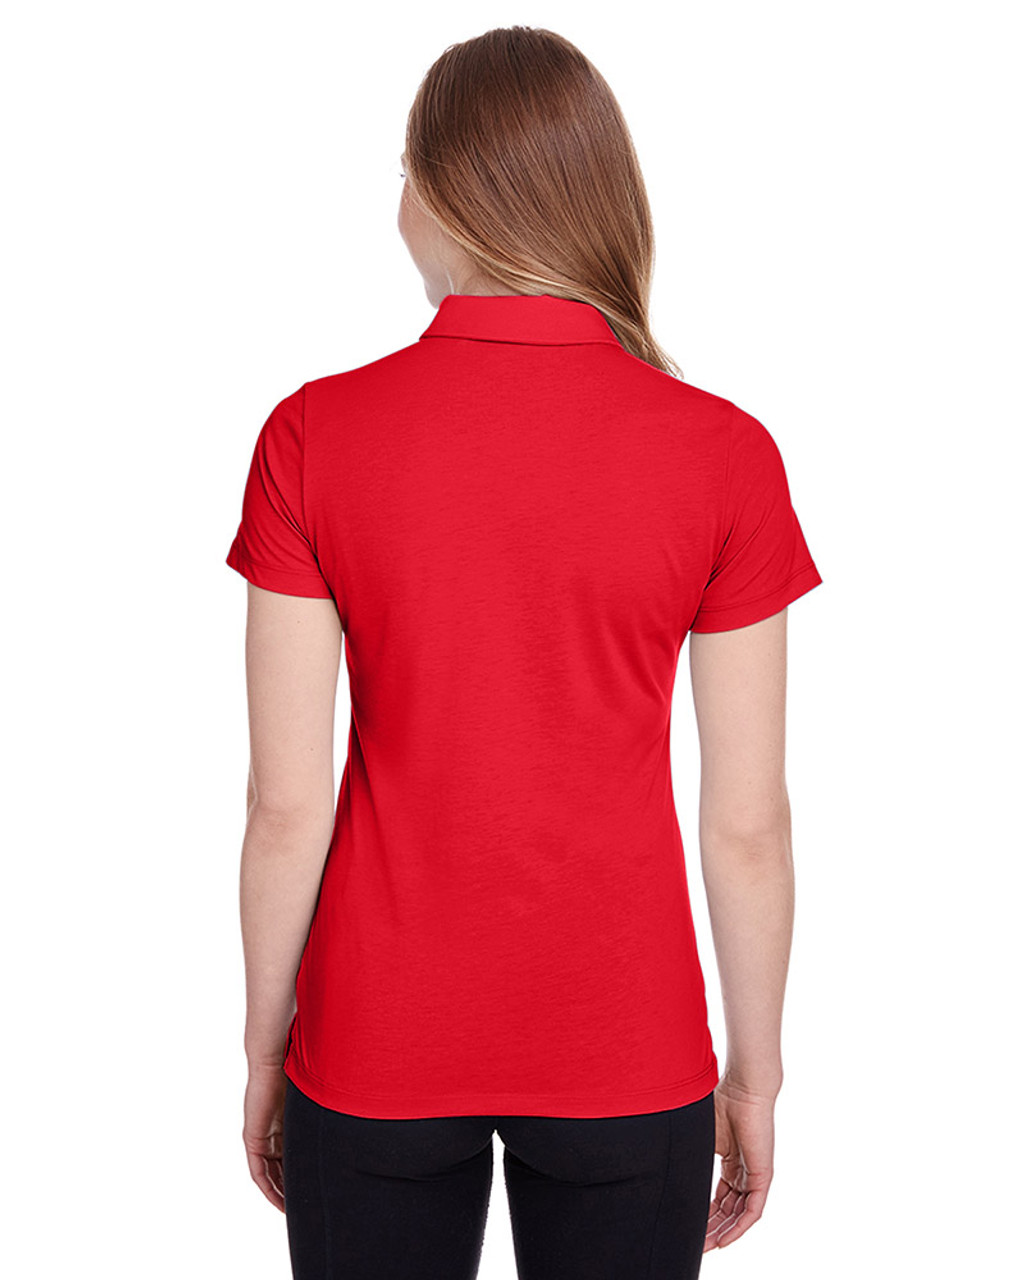 High Risk Red - back, 596921 Puma Golf Ladies' Fusion Polo | Blankclothing.ca